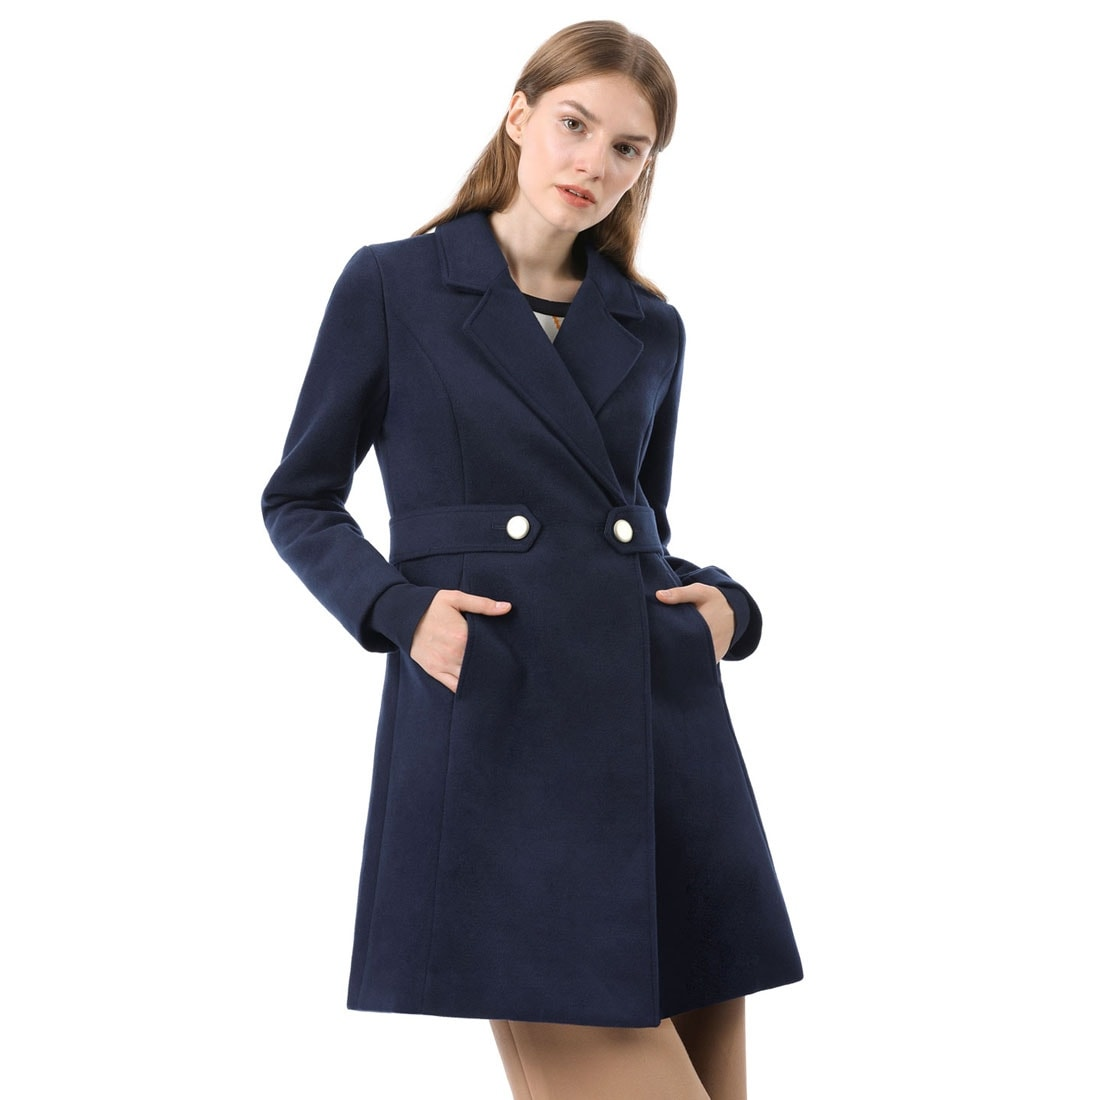 In Alert Office Lady Blazer Dress Women Winter Notched Wool Striped Dress Long Sleeve Double Breasted Dress Sexy Package Hip Pencil Dress Fashionable Style;